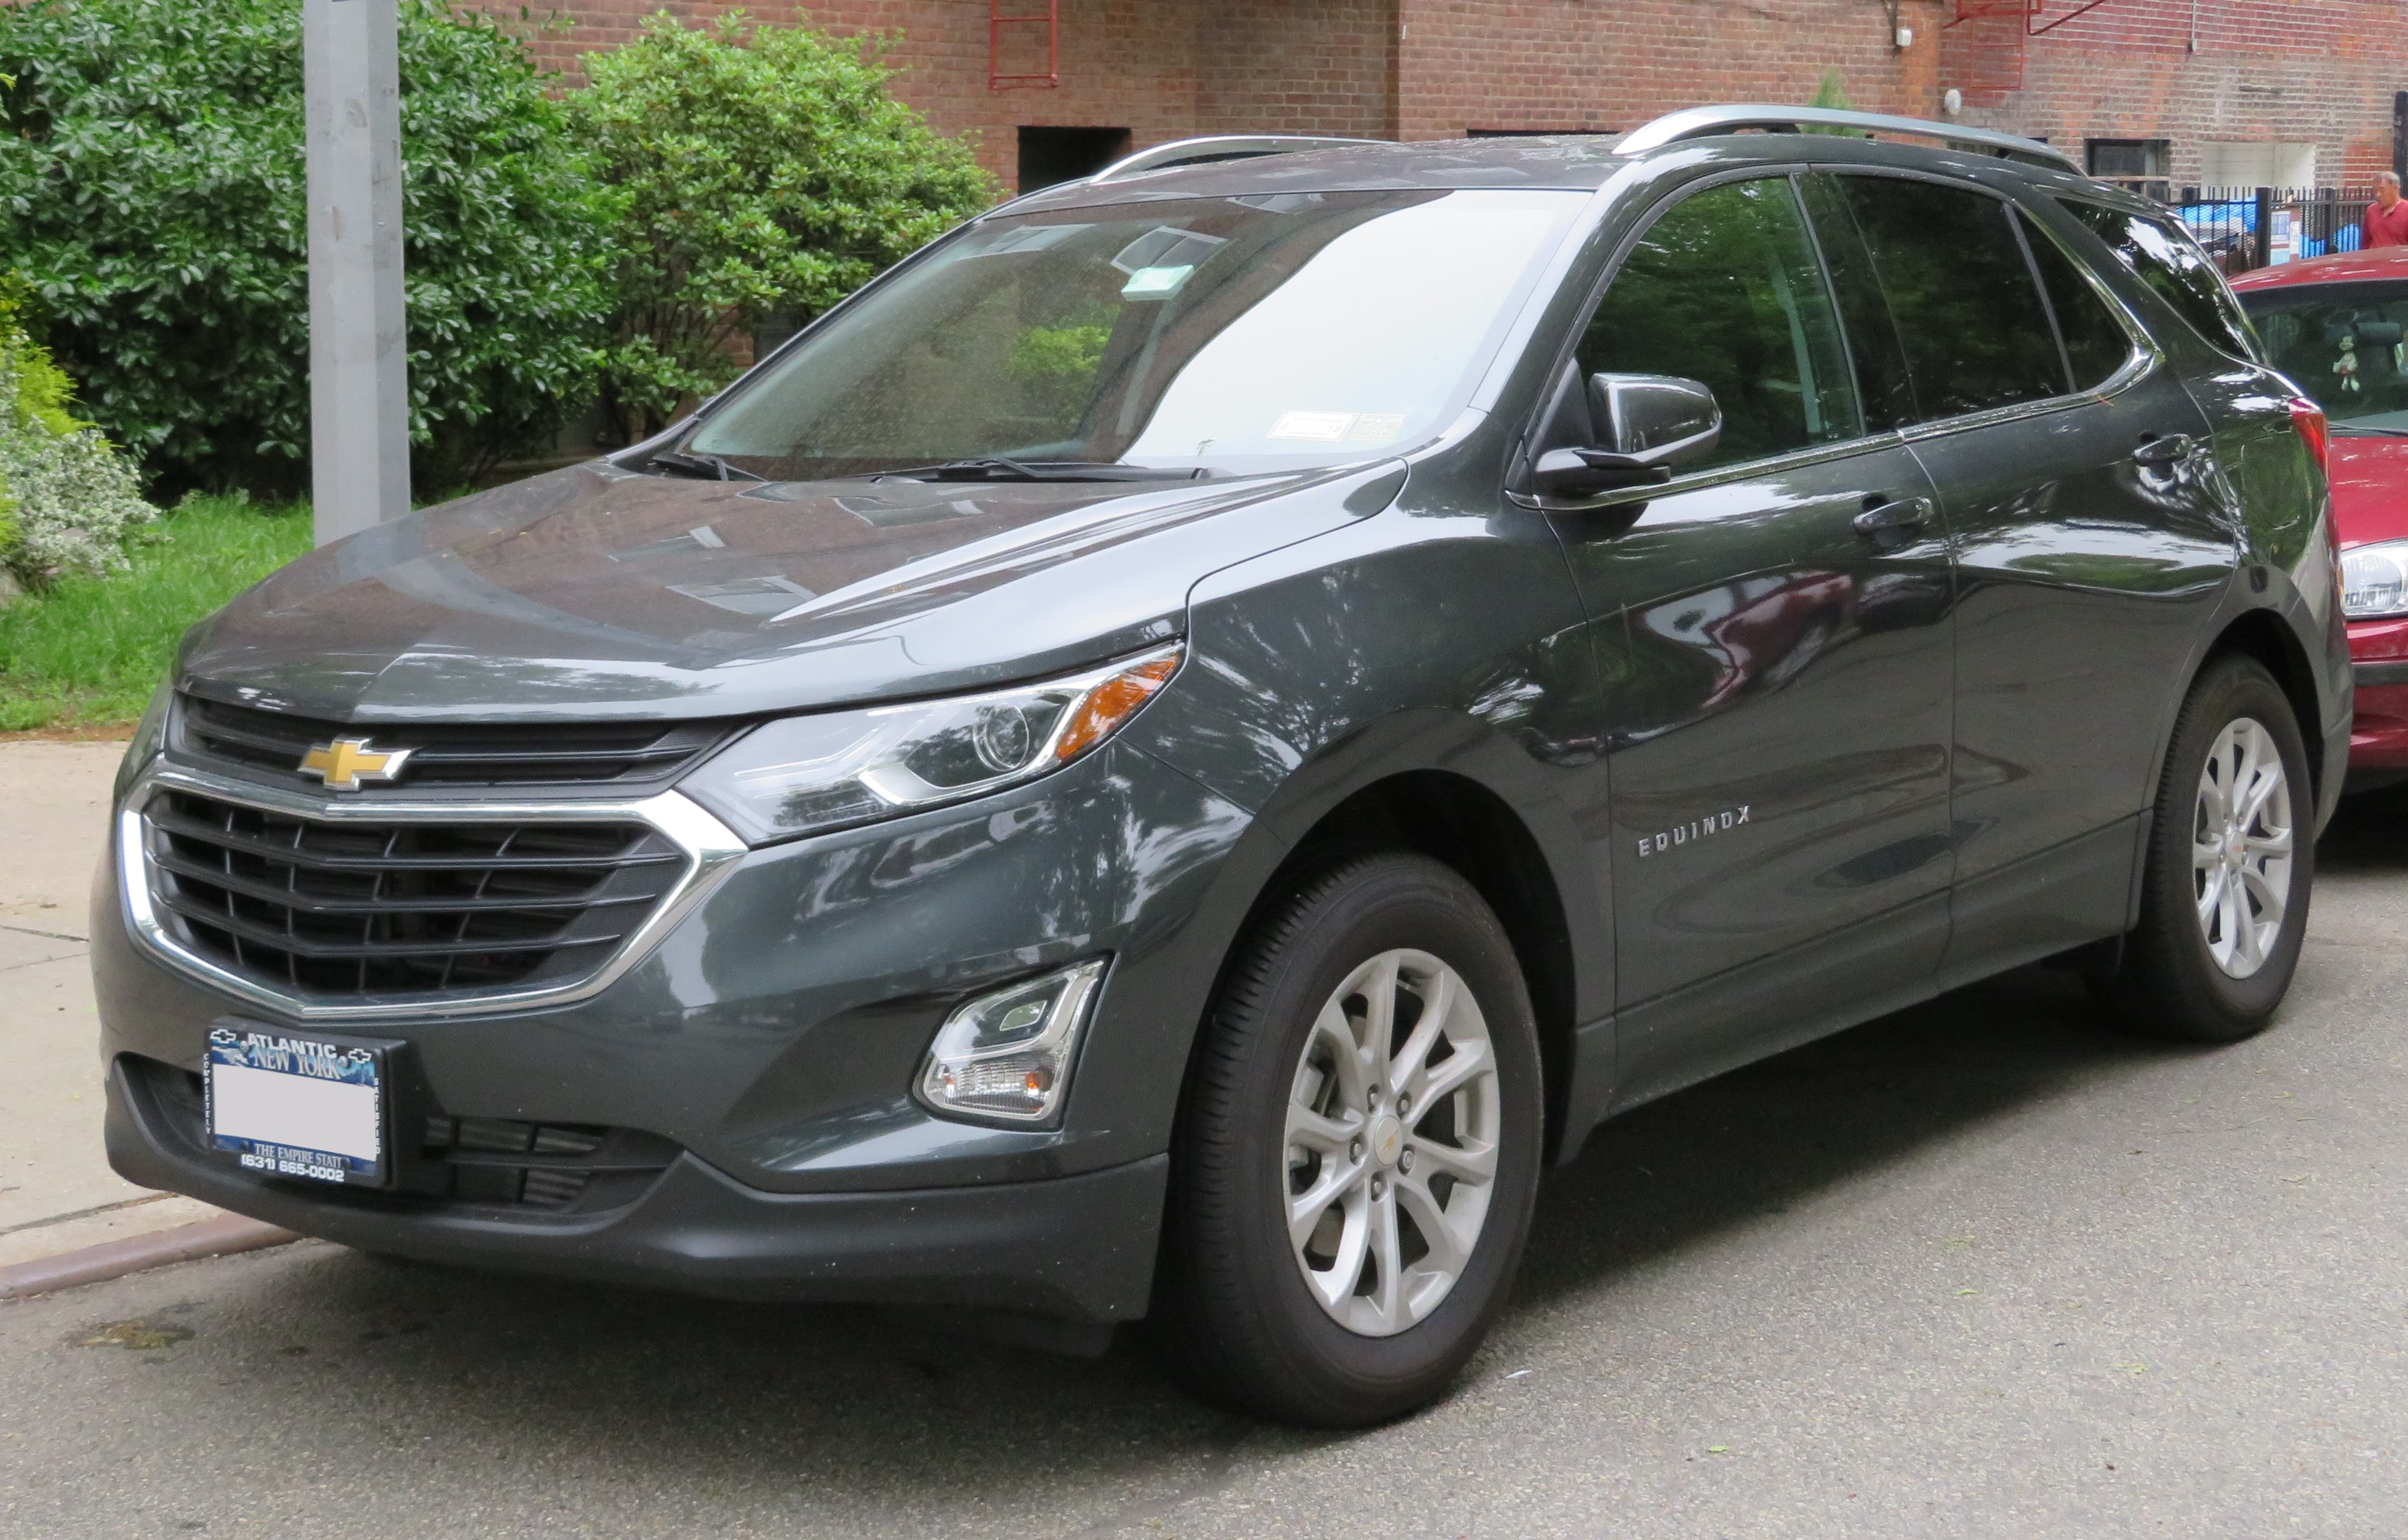 2020 Equinox Review.Complete Car Info For 13 Best 2020 Chevy Equinox Price And